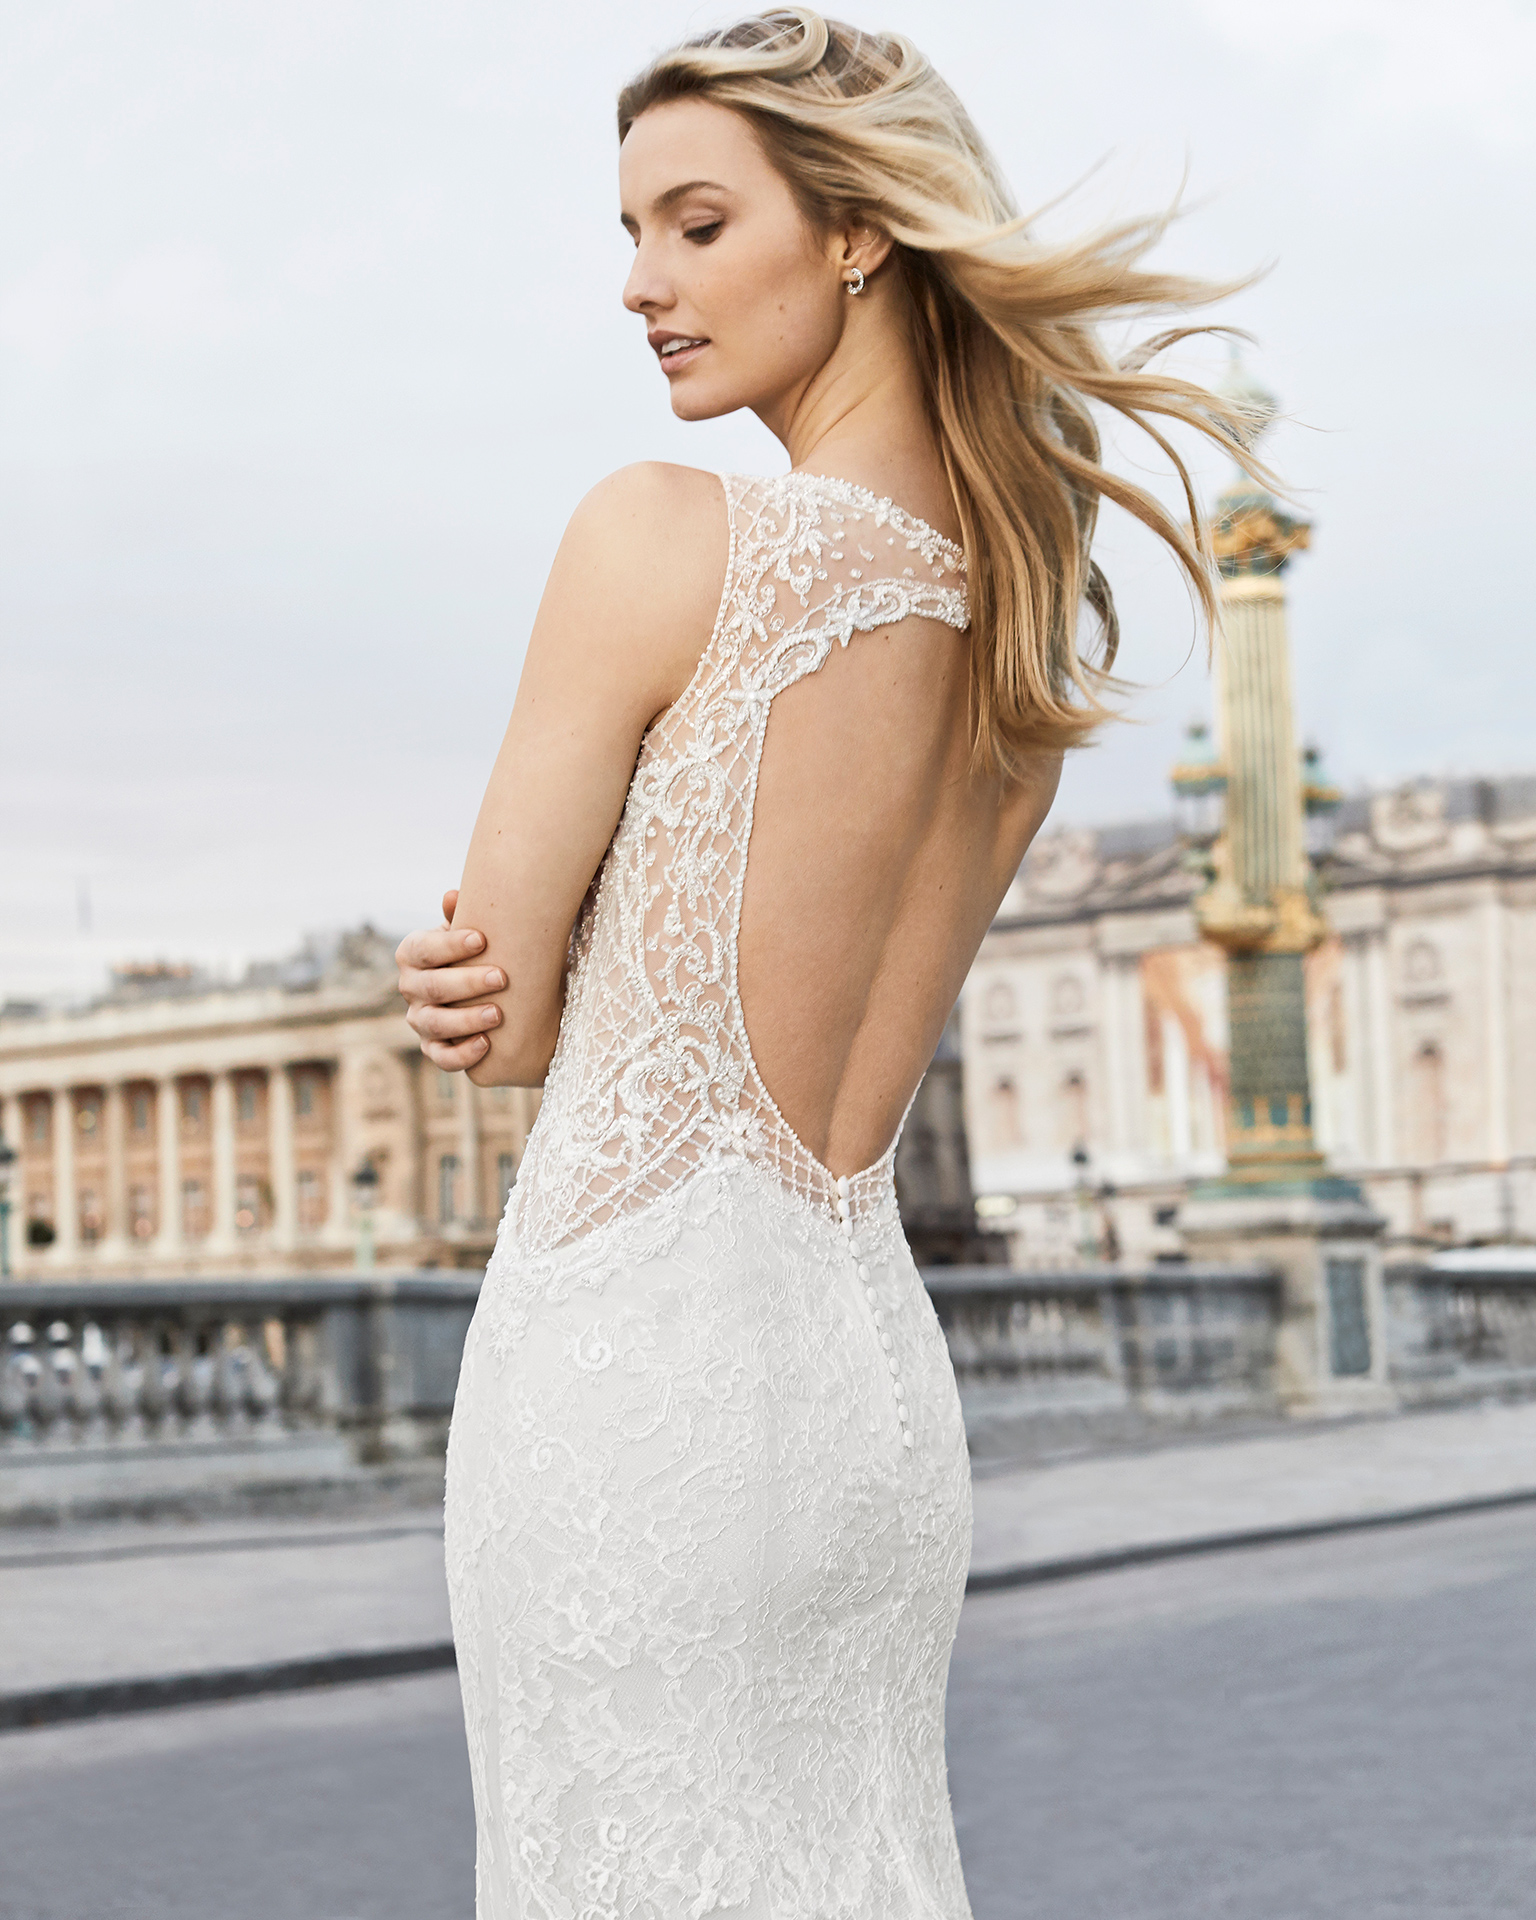 Robe de mariée coupe sirène en dentelle et pierreries. Col en V et dos nu. Disponible en couleur naturelle/champagne et naturelle. Collection AIRE BARCELONA 2019.